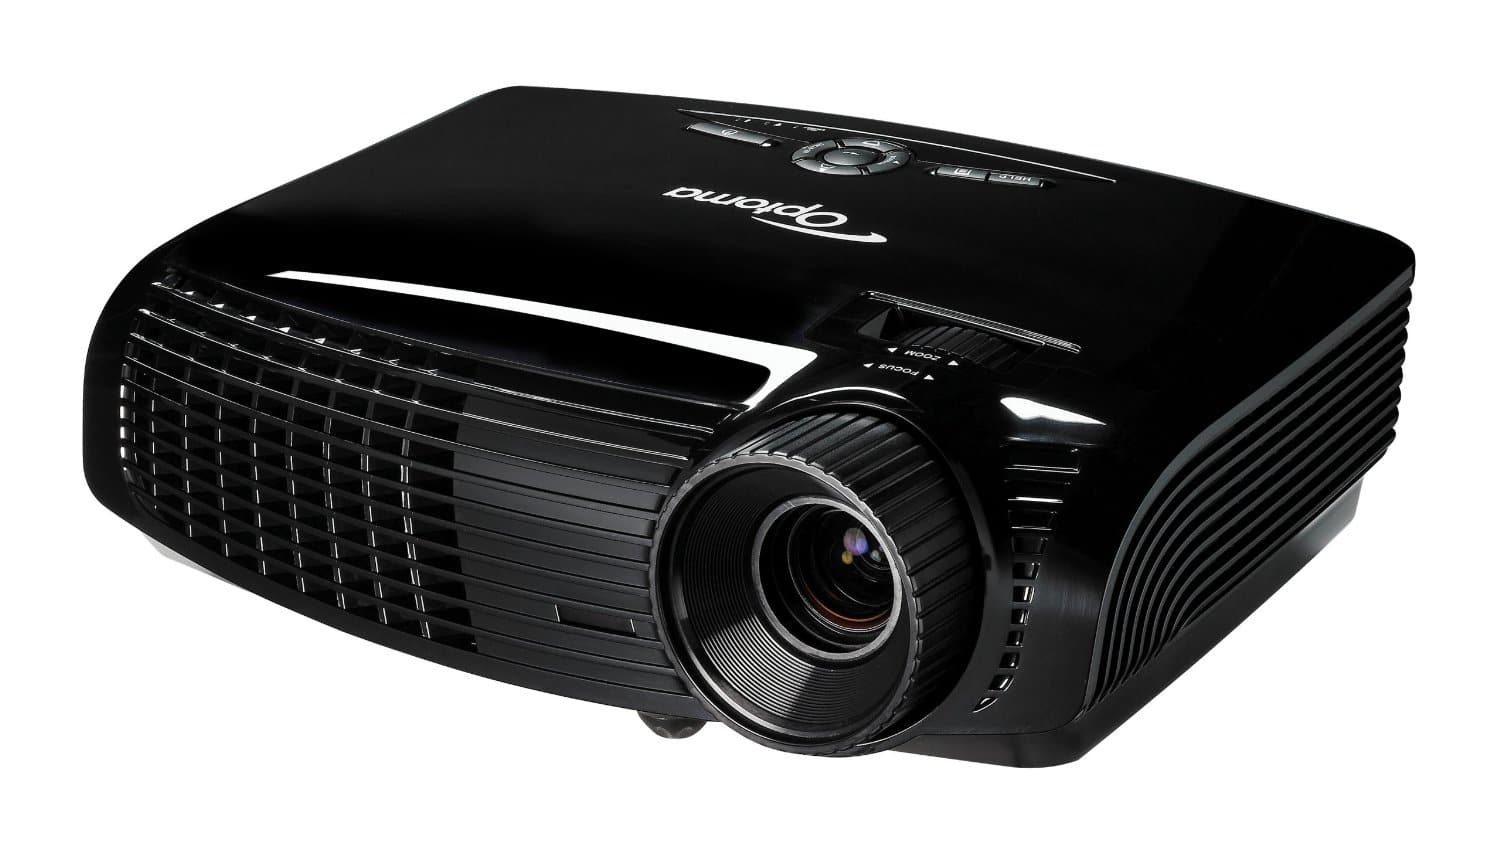 Optoma HD131Xe 1080p 2500 Lumen Full 3D DLP Home Theater Projector with HDMI $665 at Amazon + $100 gift card